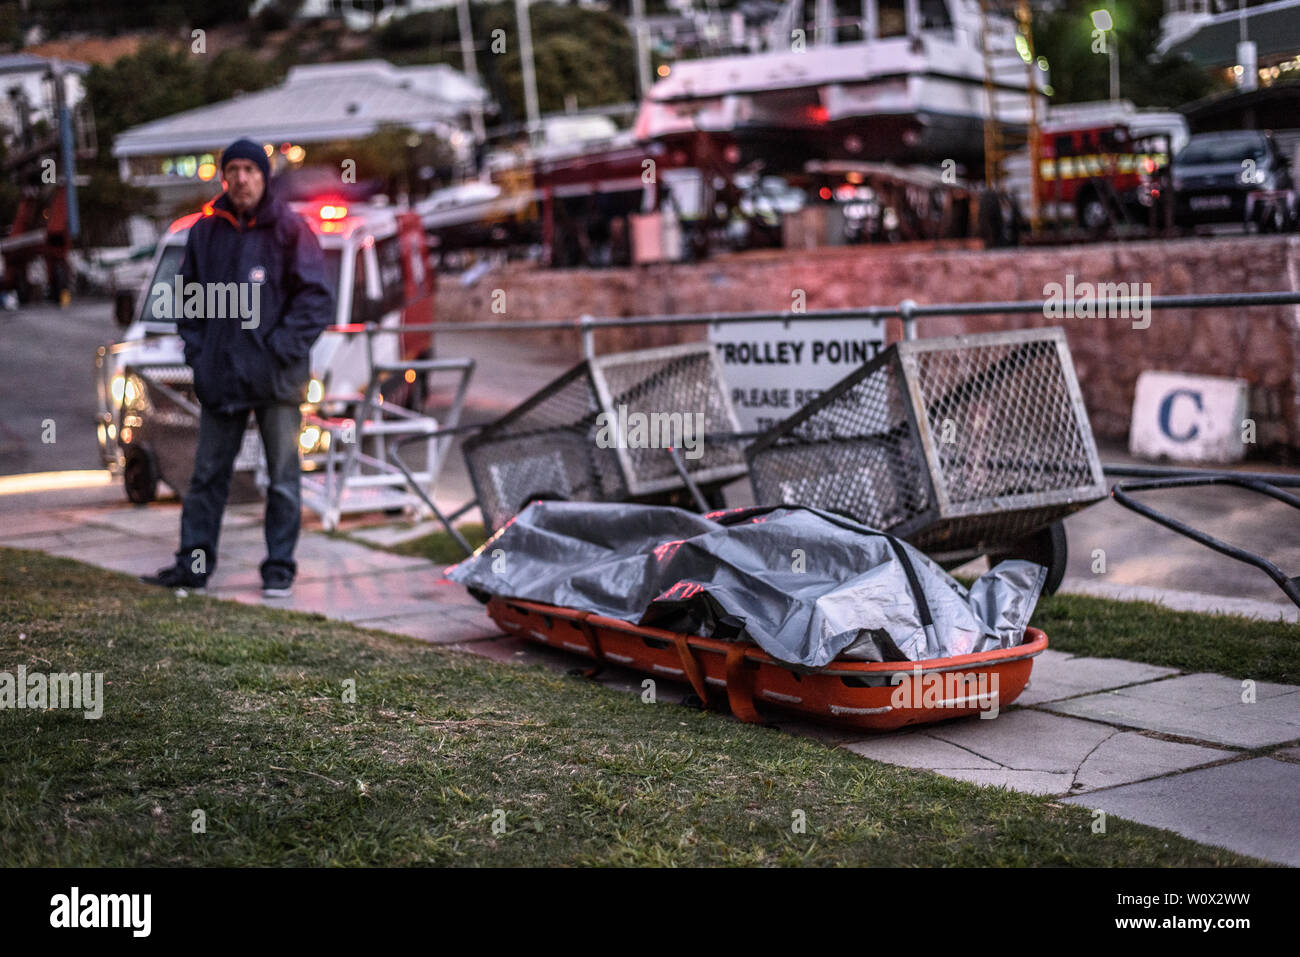 Boat Stretcher Stock Photos & Boat Stretcher Stock Images